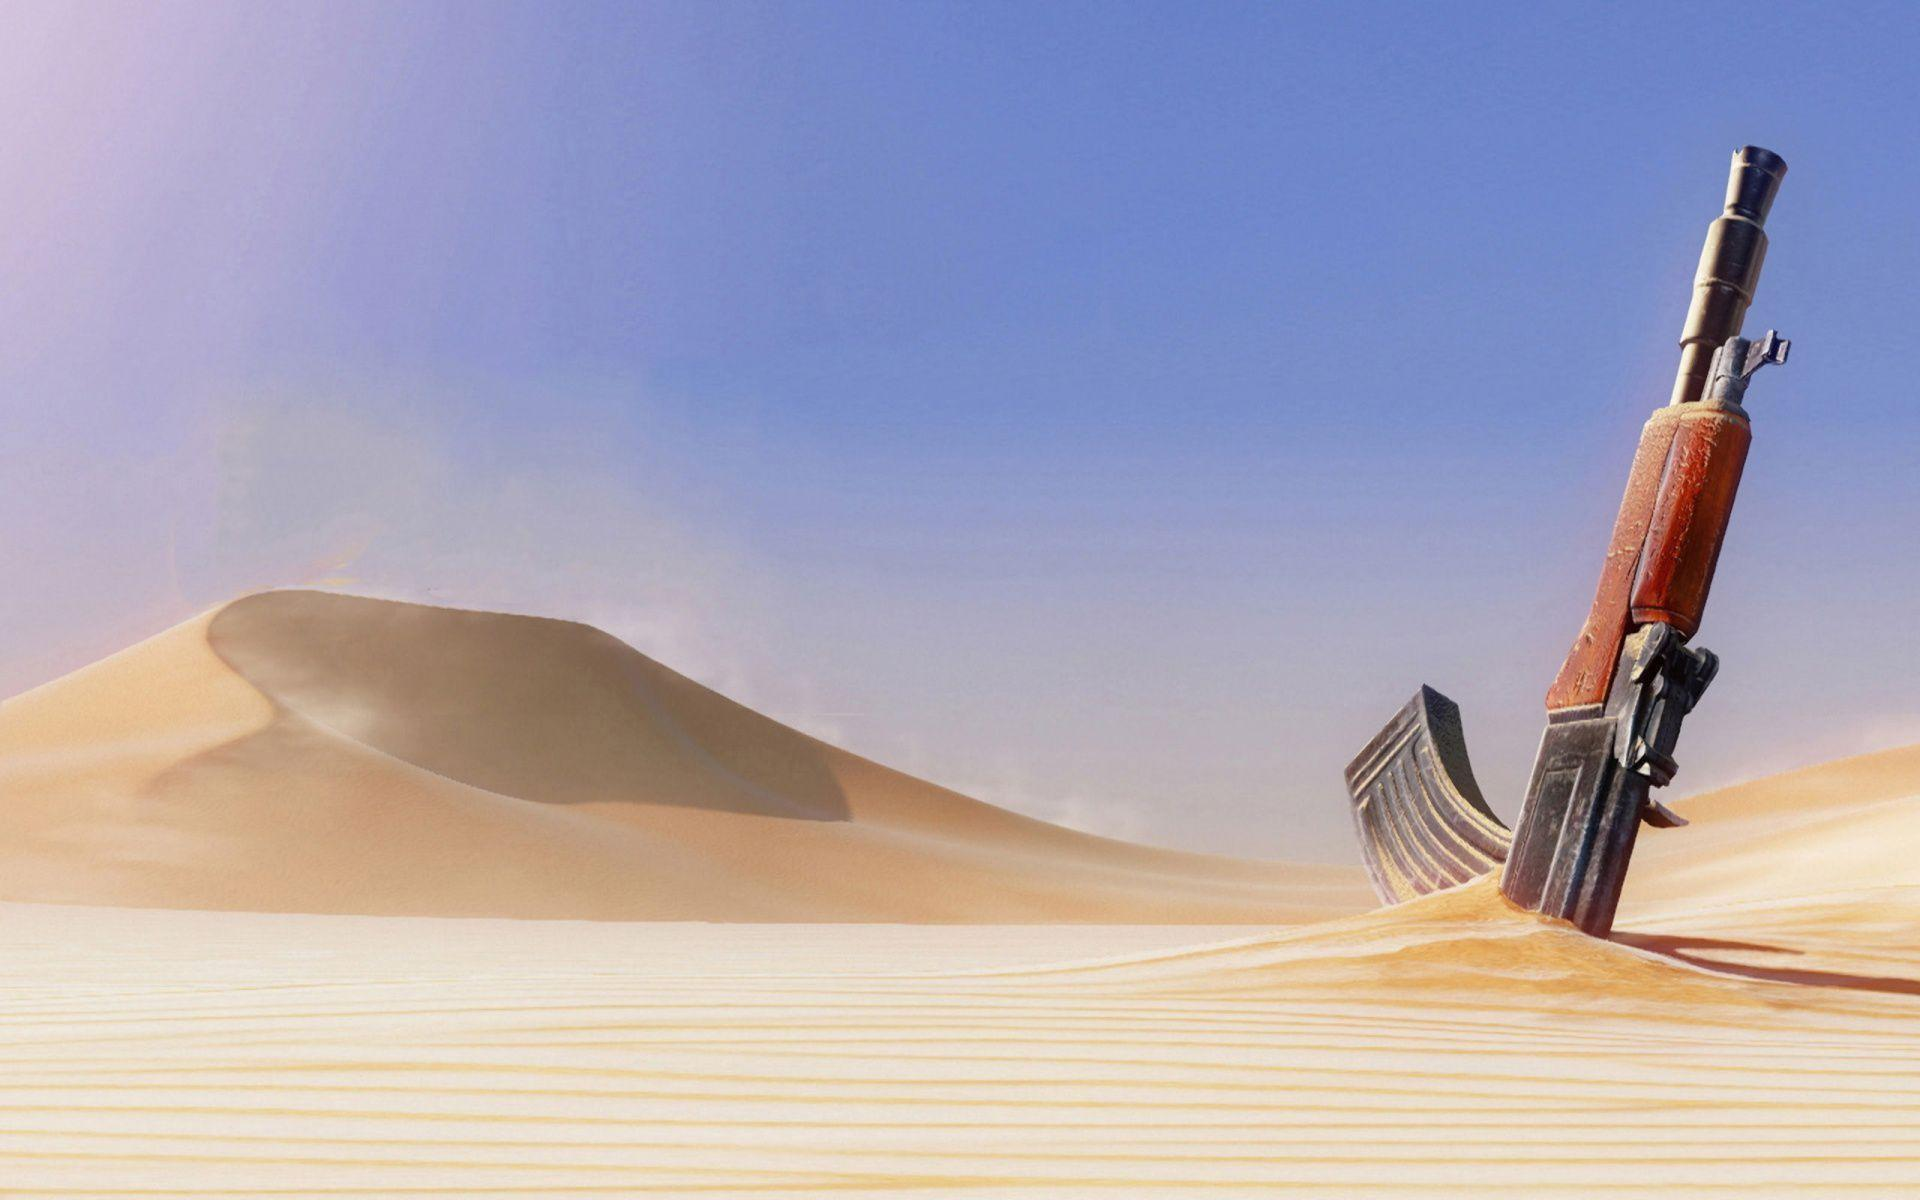 15 Uncharted 3: Drake's Deception HD Wallpapers | Backgrounds ...